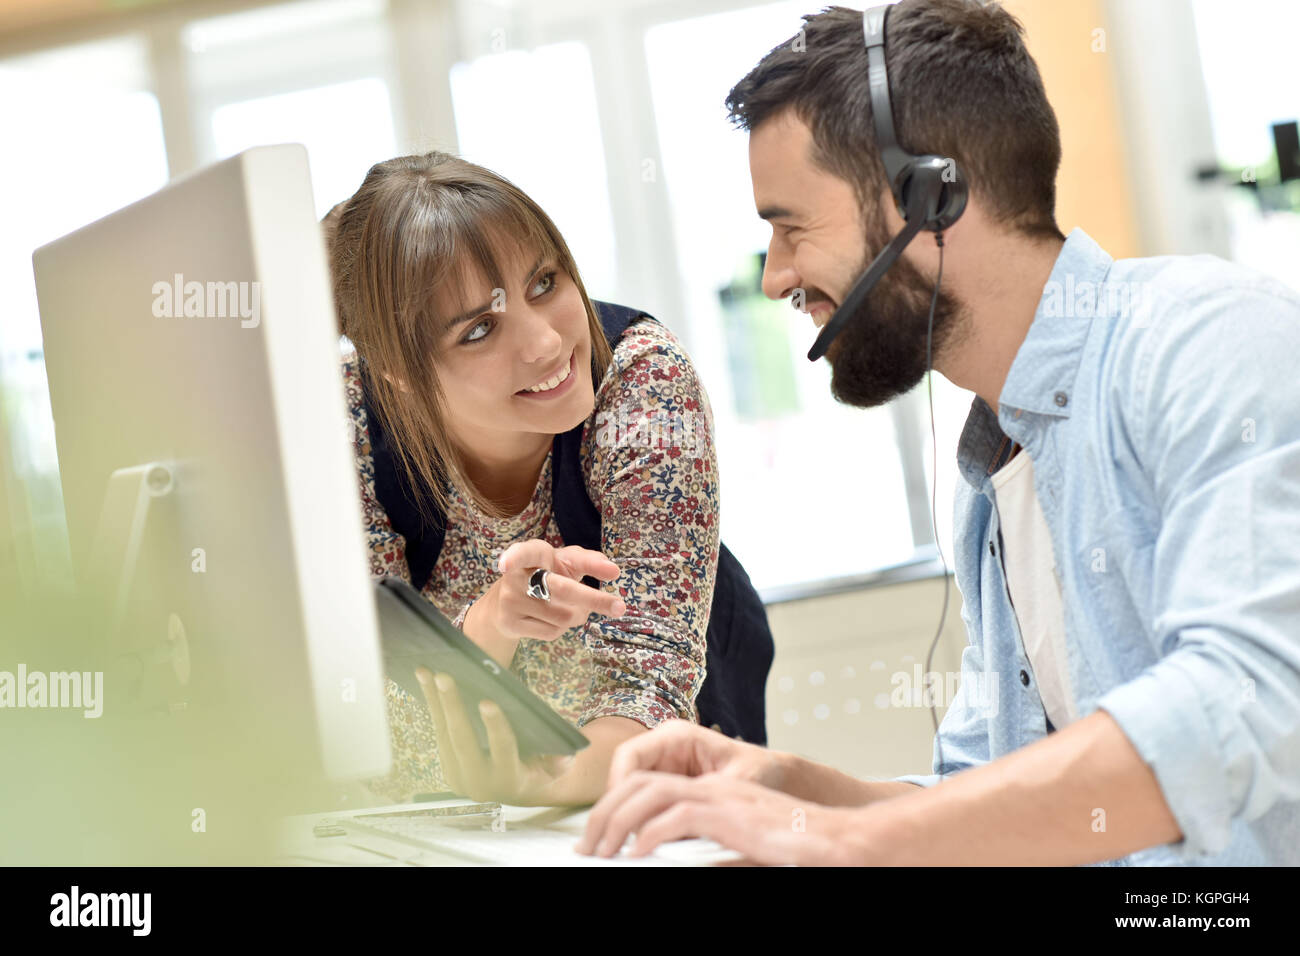 Telemarketing people working together in office Stock Photo